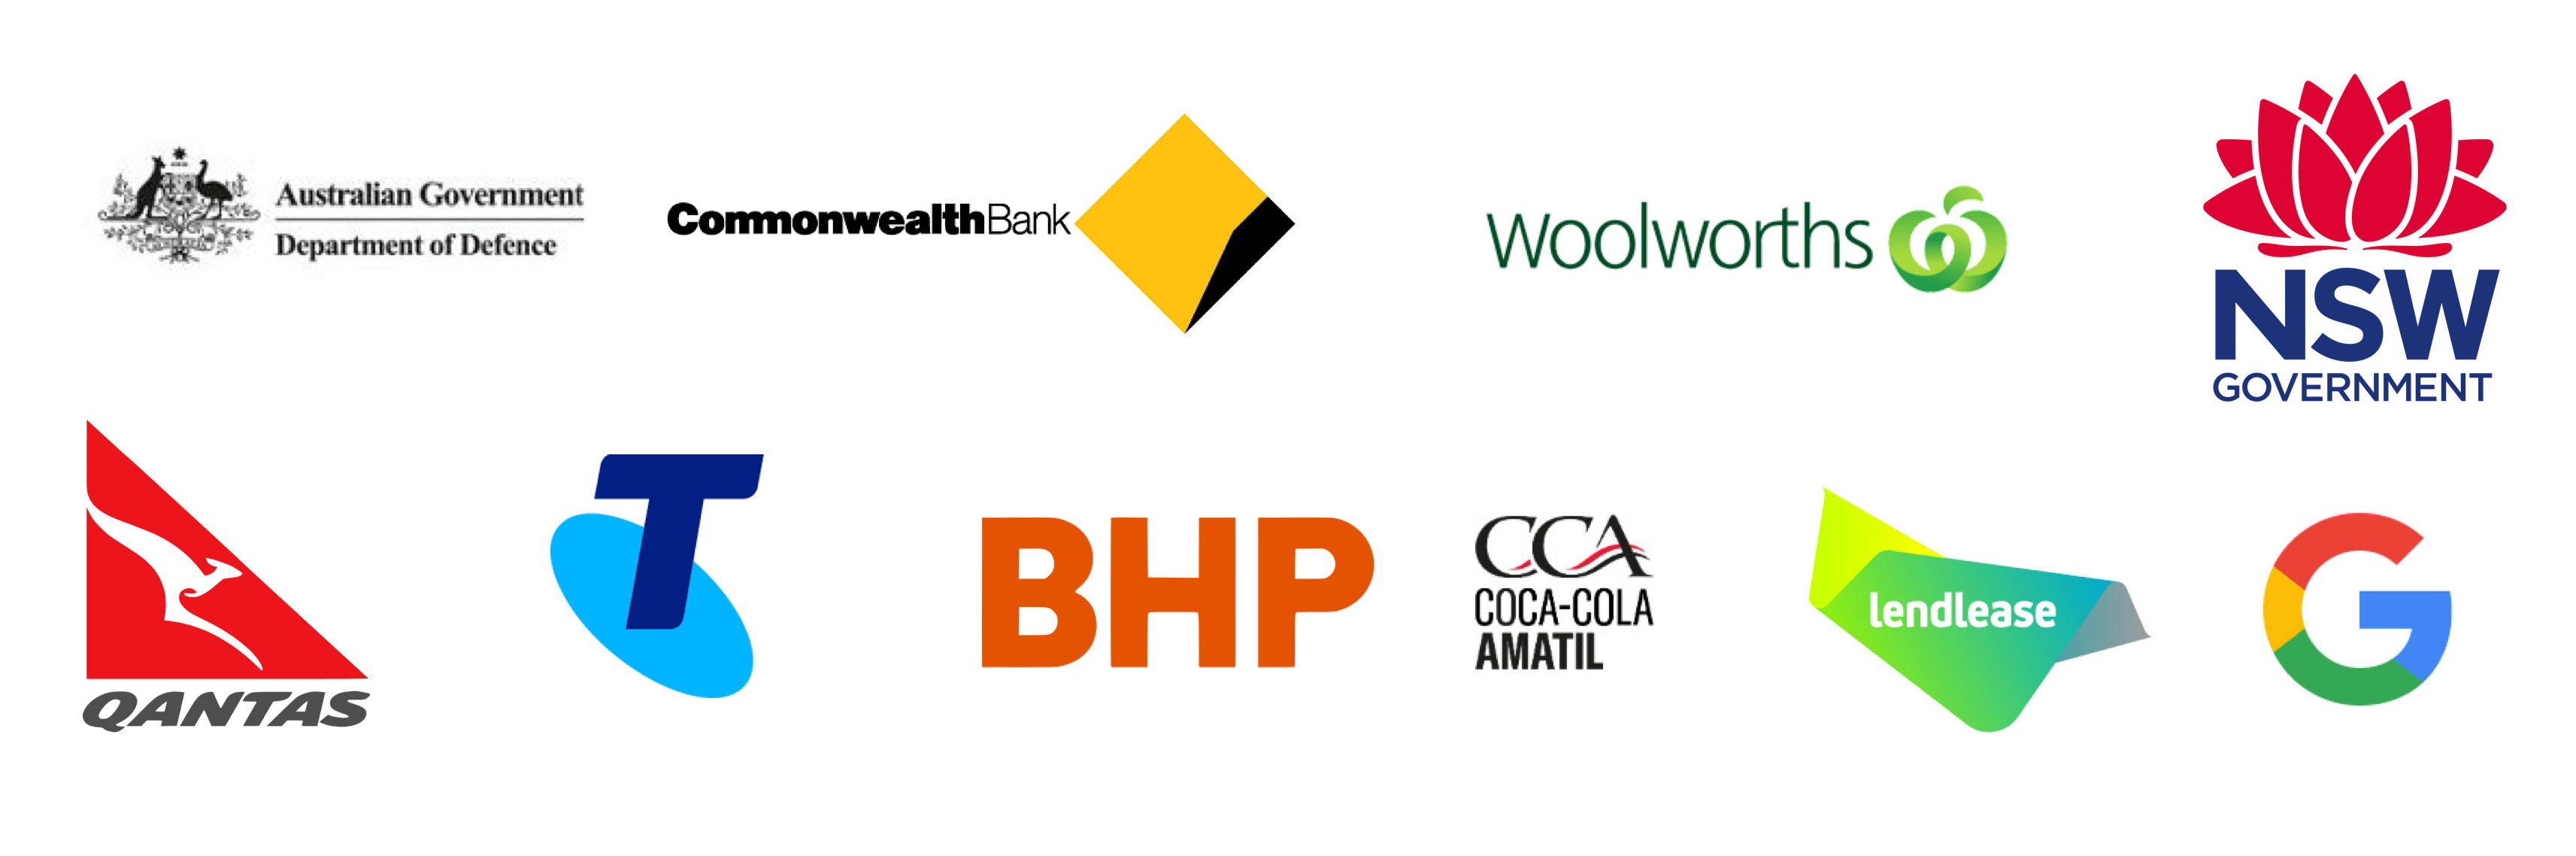 NSW government, Commonwealth bank, Australian Government Department of Defense, Woolworths, Quantas, Telstra, BHP, Coca Cola Amatil, Leandlease, Google